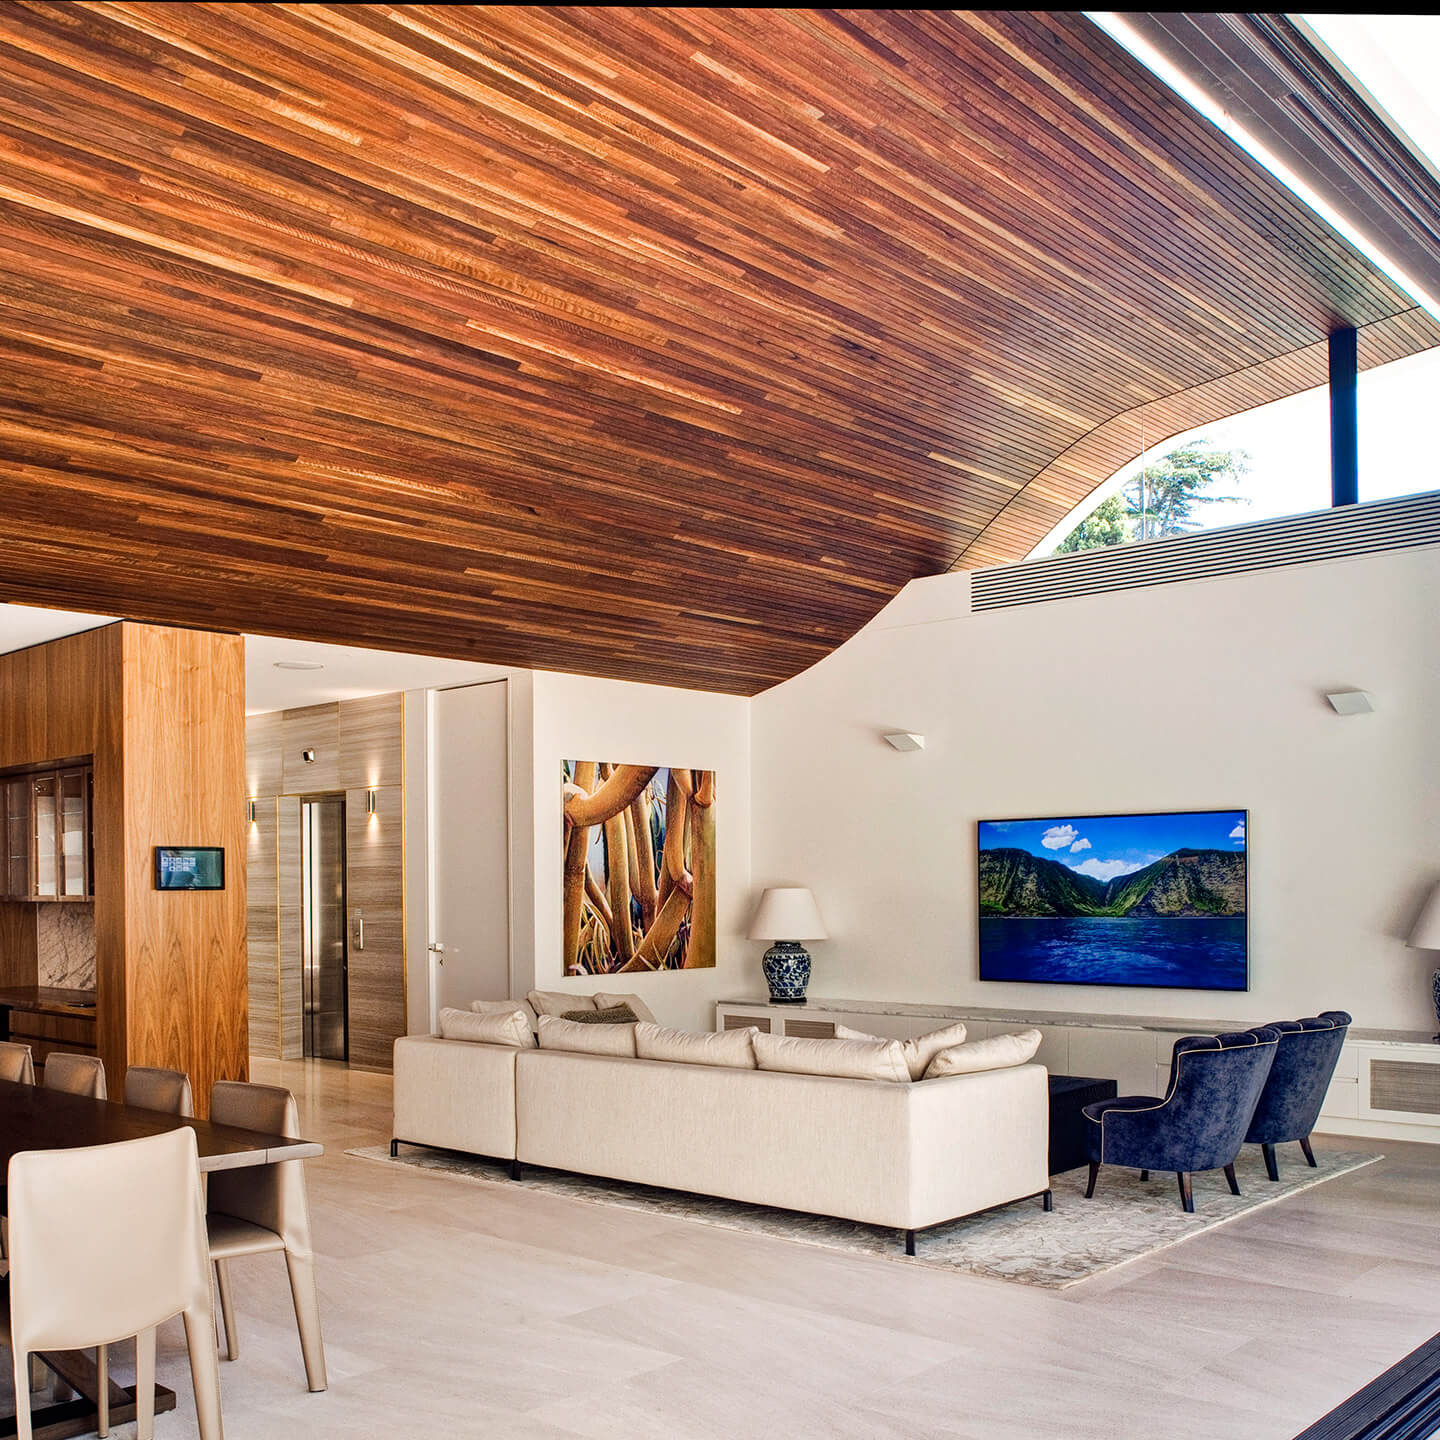 Sculptform Timber Feature ceiling